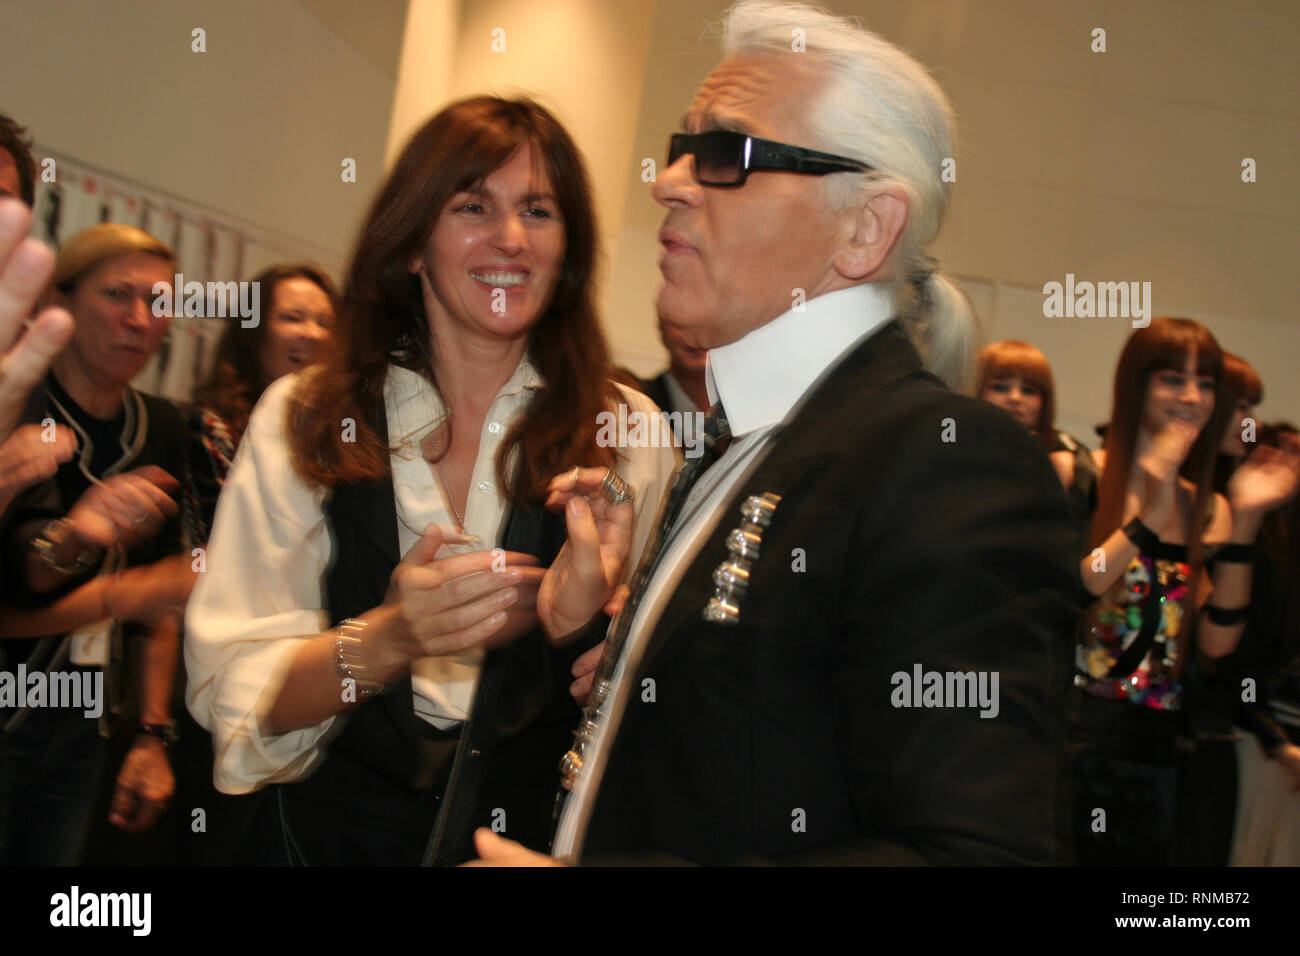 Karl Lagerfeld and models backstage at Chanel 'Coco a Tokyo' fashions shows at the new Chanel store in Ginza, Tokyo, Japan, 03.12.04. The 'Coco a Tokyo' show was the first time Chanel clothes have been premiered outwith Paris, France. Also shots of people shopping in the new store. - Stock Image